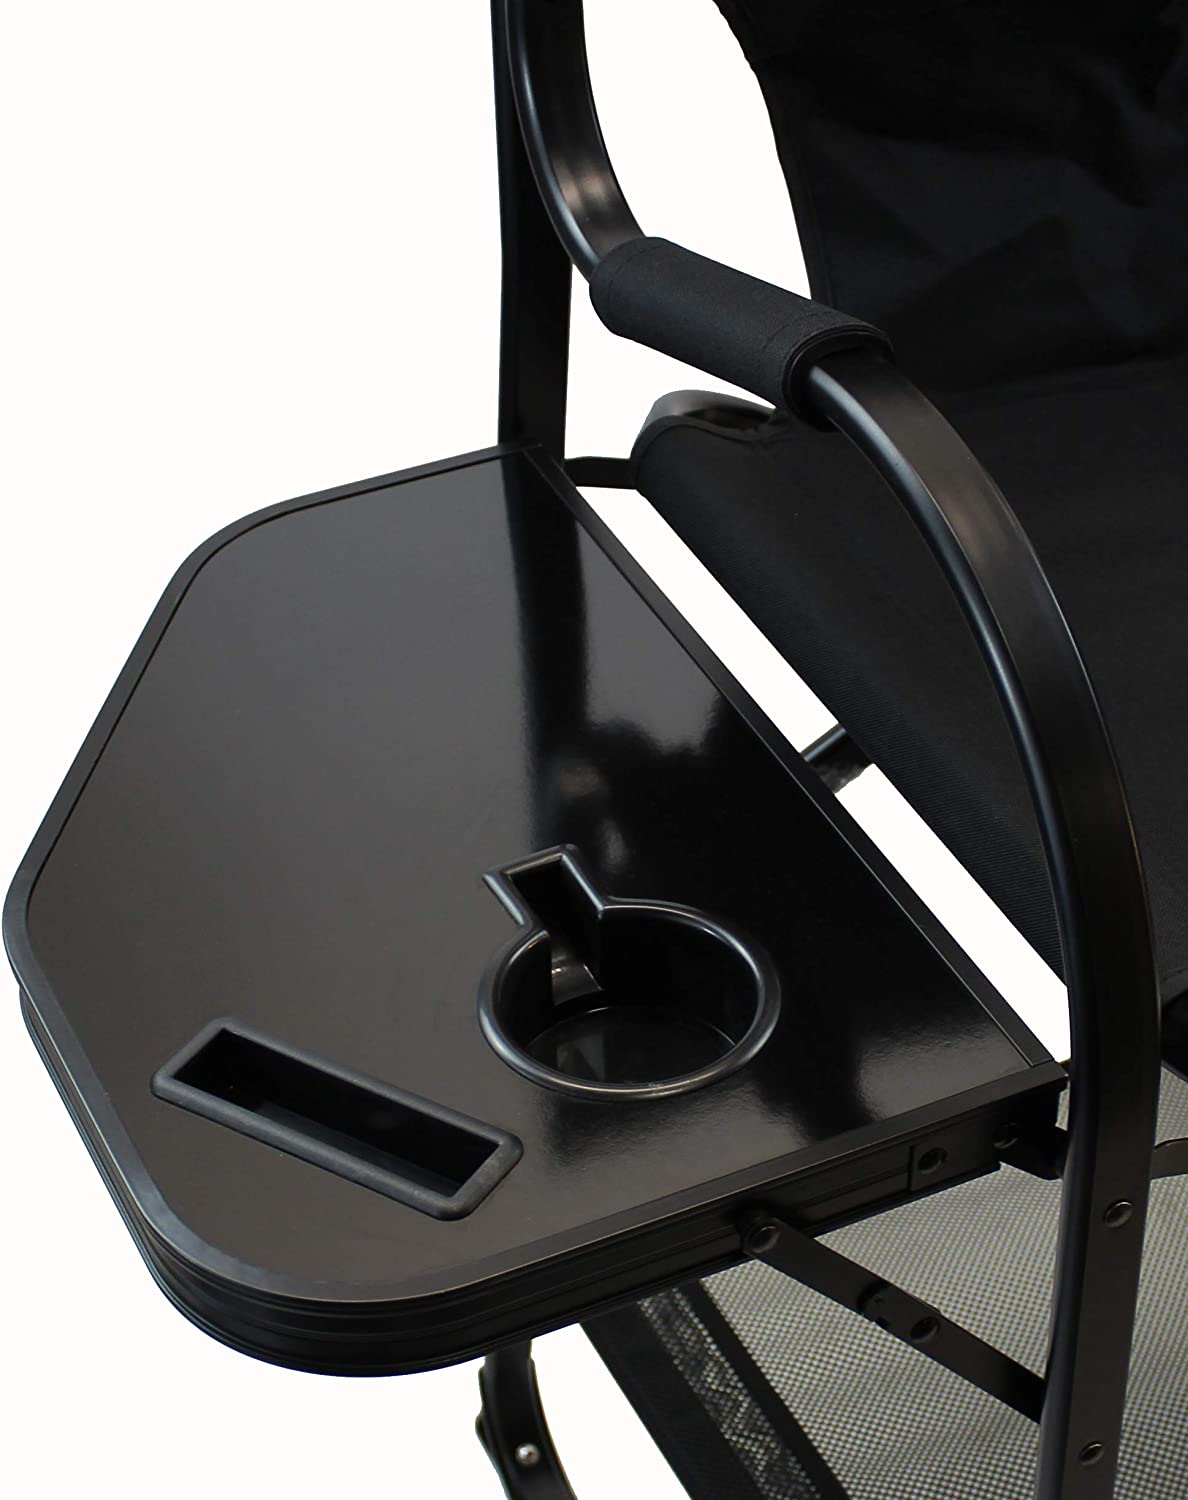 World Outdoor Products Professional Edition 2 Pack Tall Directors Chairs with Side Table,Built-in Cup and New Cellphone Holder,New Removable Front and Backside Patches.